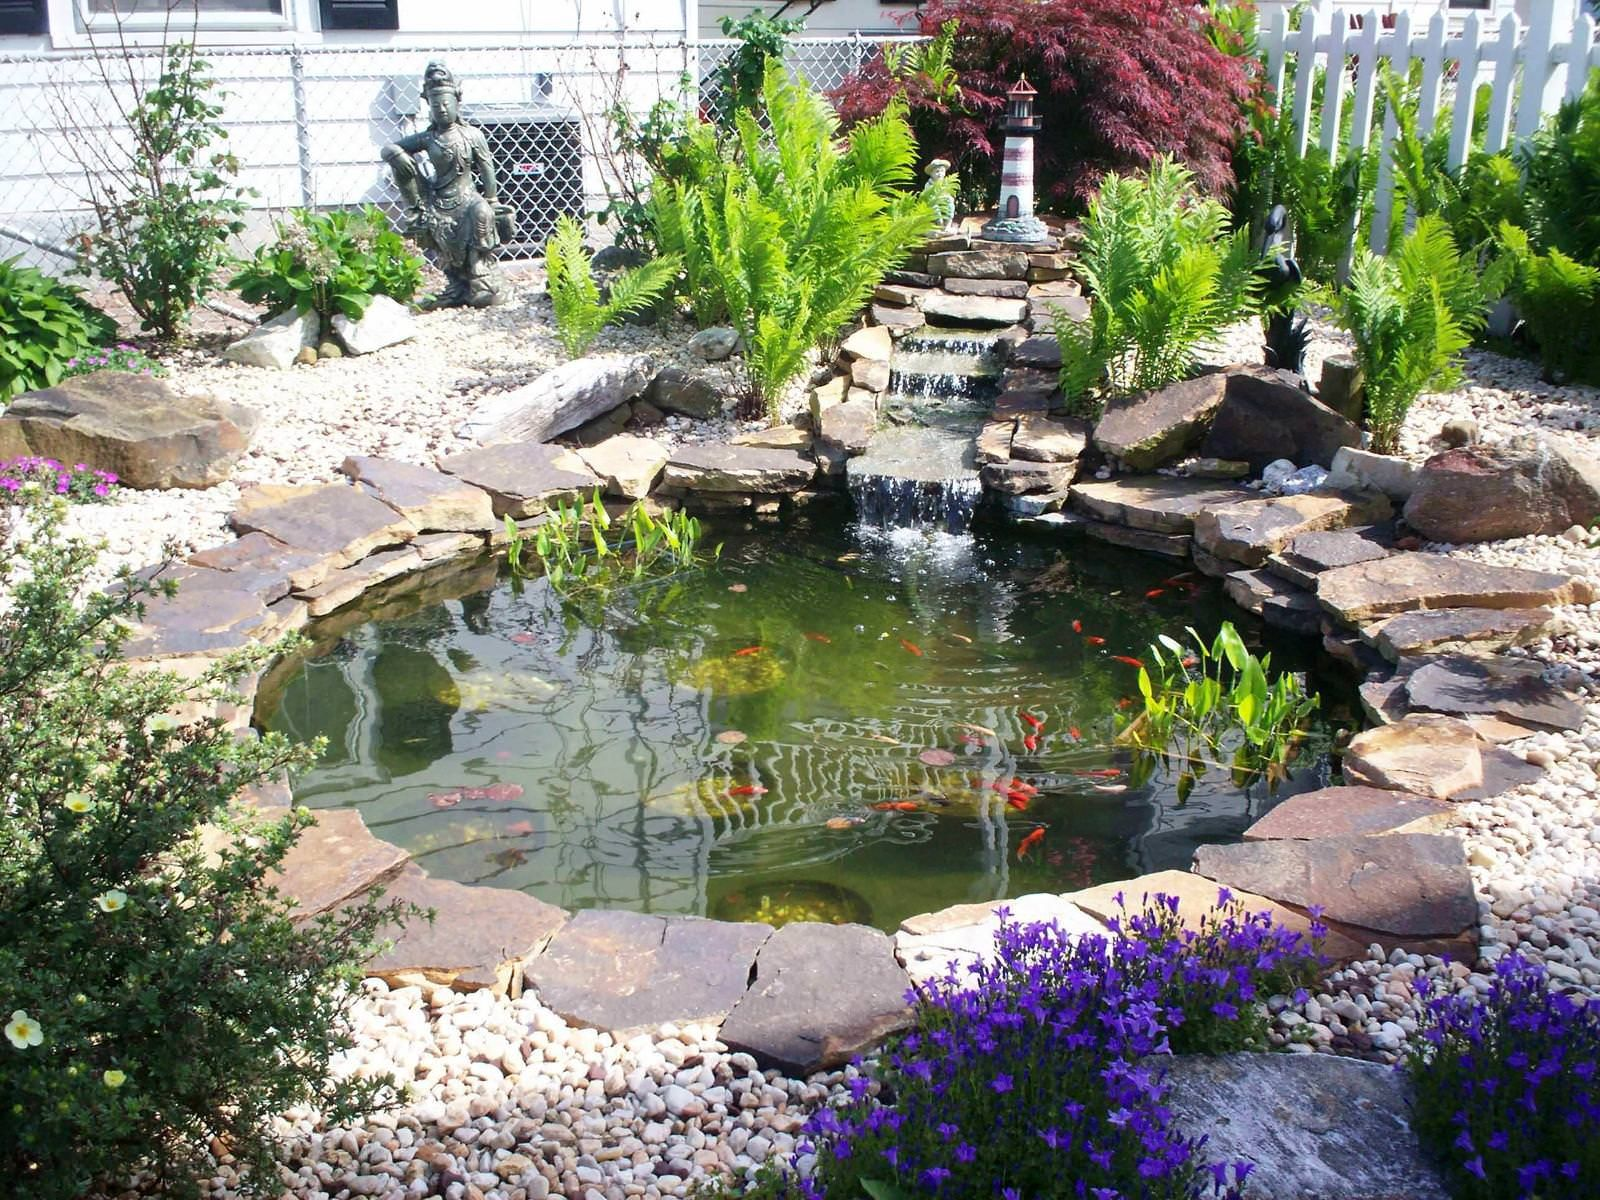 Small garden or backyard aquarium ideas practic ideas for Backyard pond designs